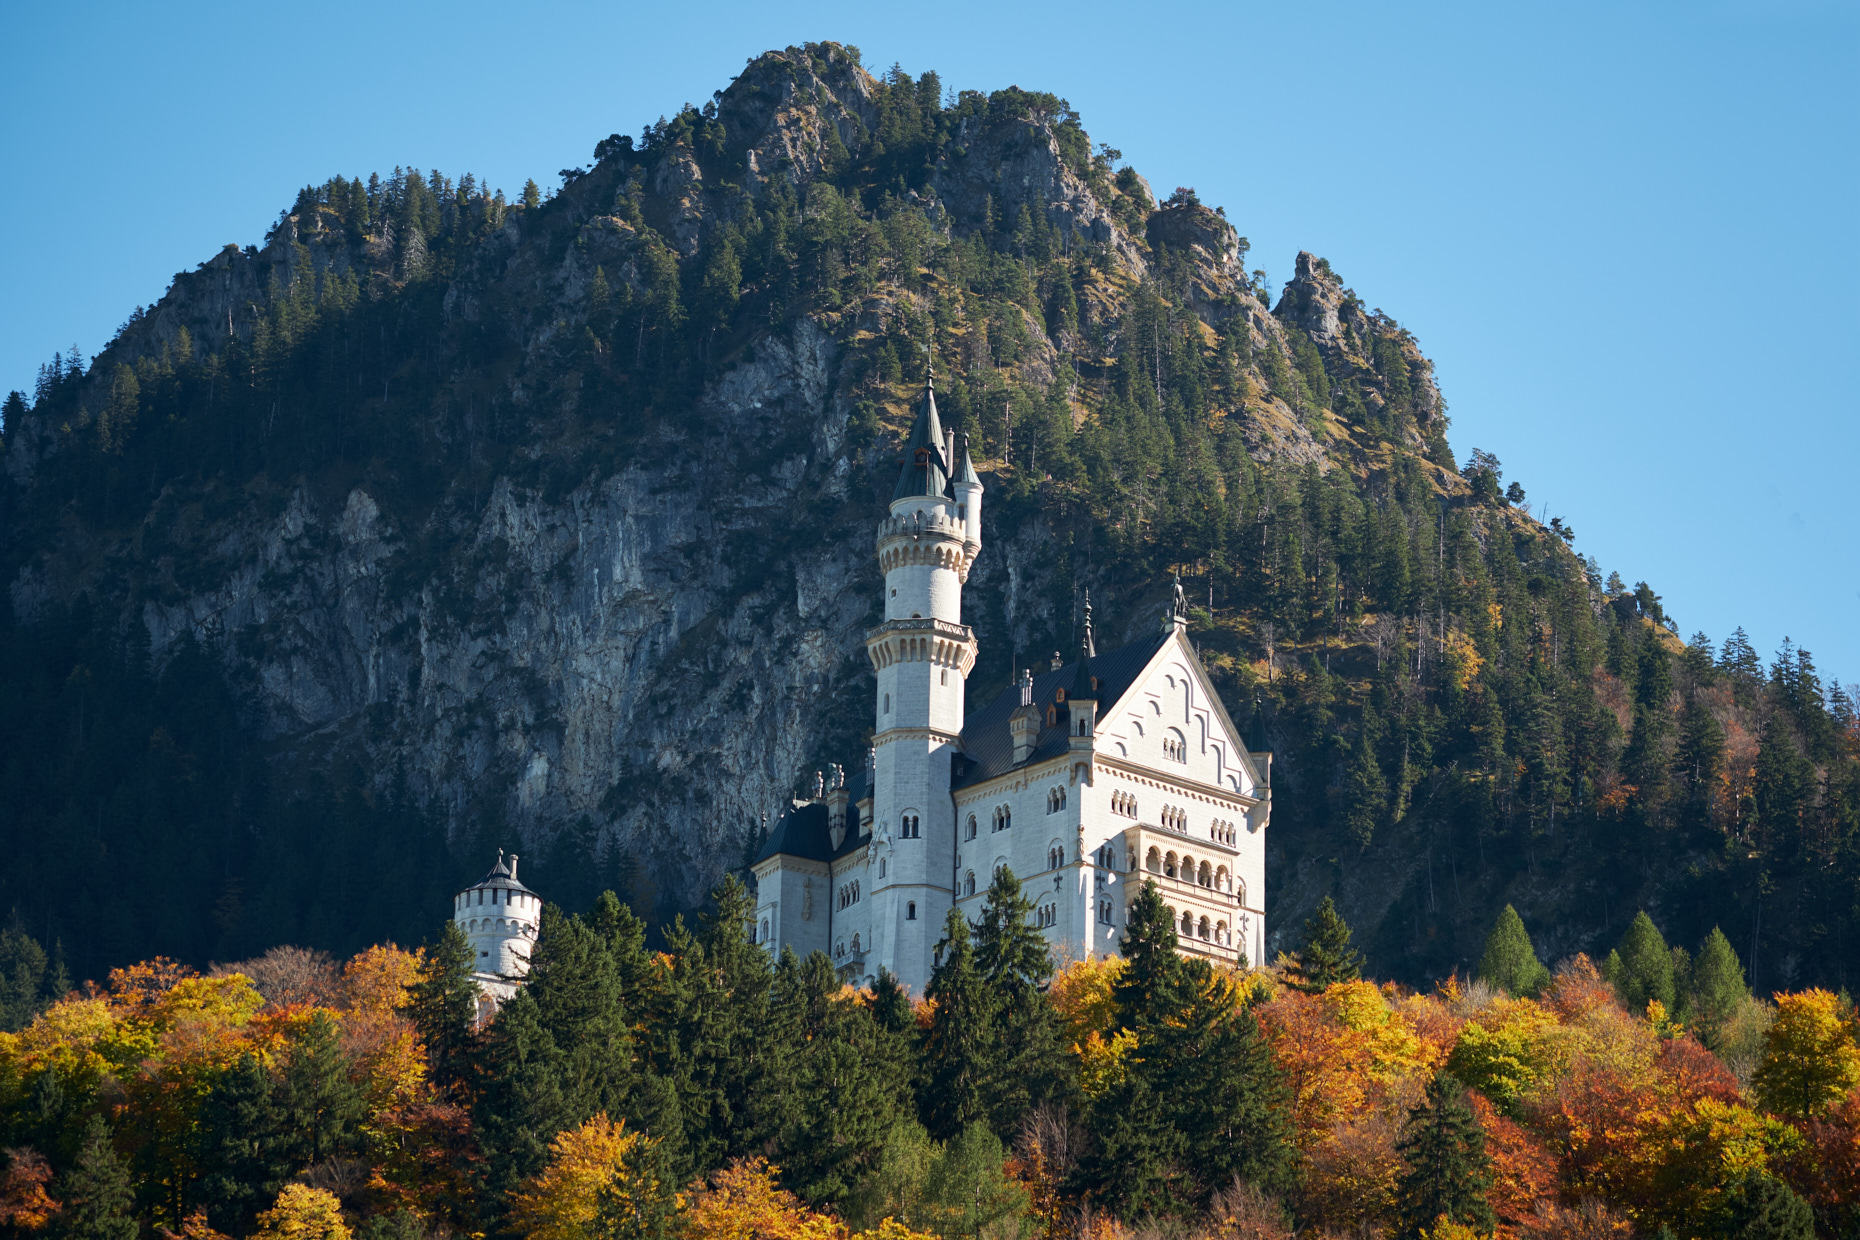 Neuschwanstein castle on mountain side